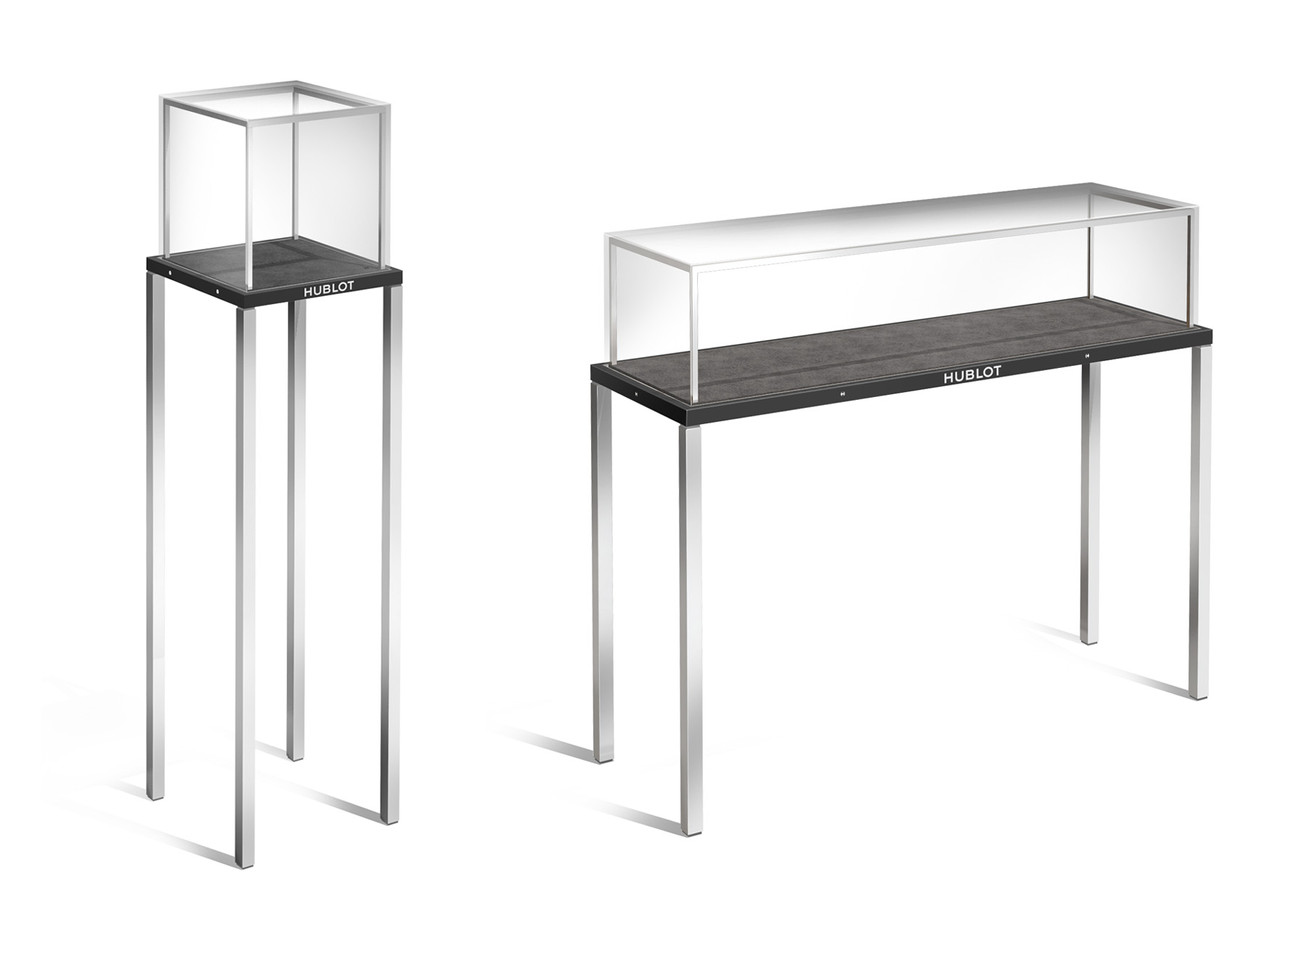 Corner Concept Furniture - Generation 2 - Tower & Counter Showcases